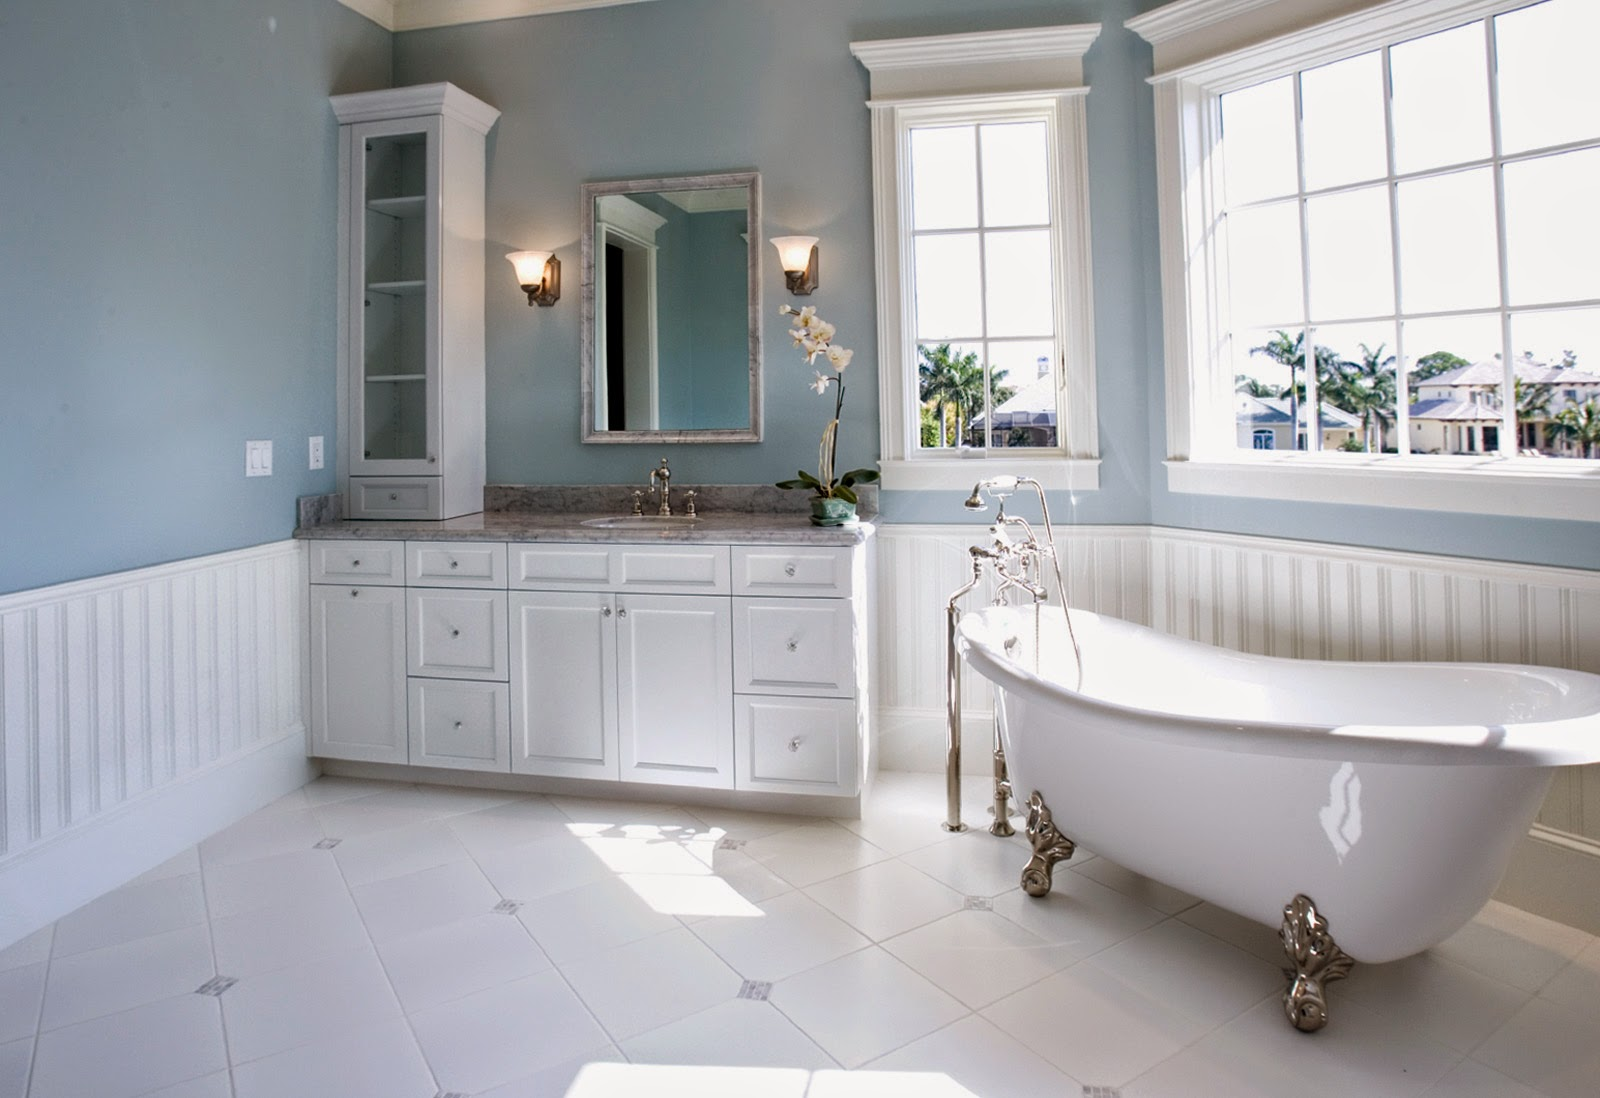 Top 10 beautiful bathroom design 2014 home interior blog for Popular bathroom decor